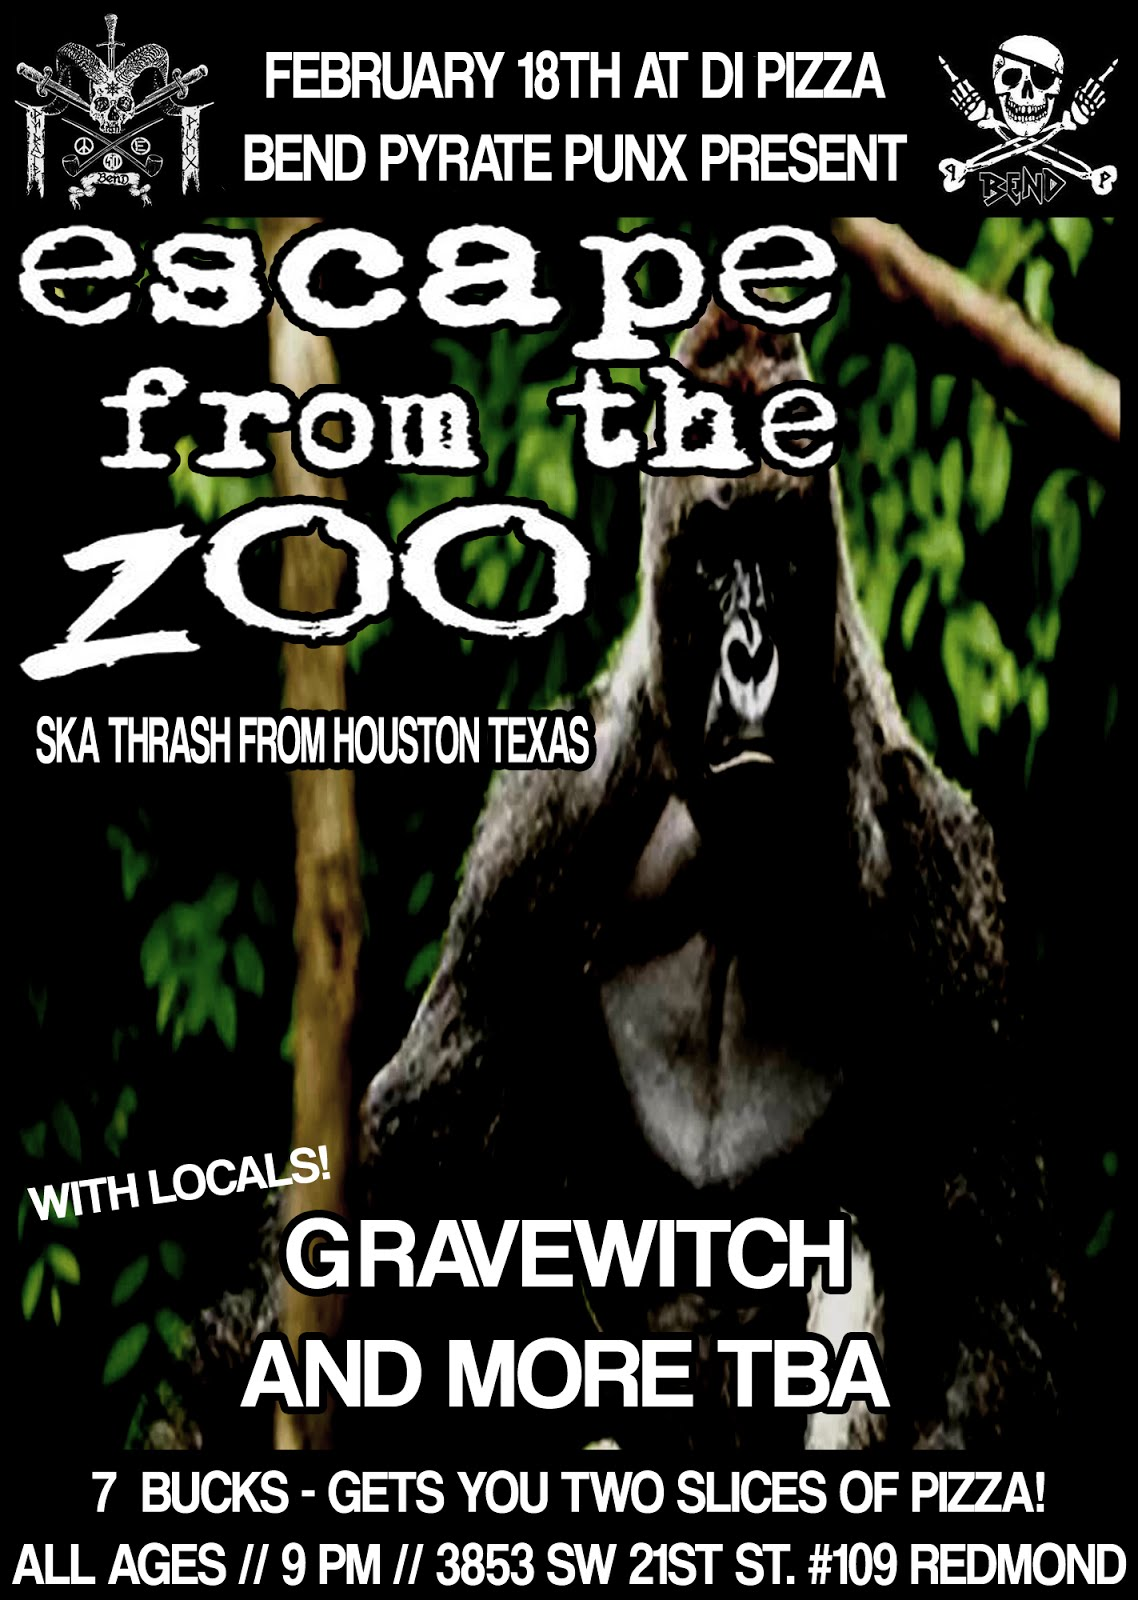 ESCAPE FROM THE ZOO, GRAVEWITCH, TBA